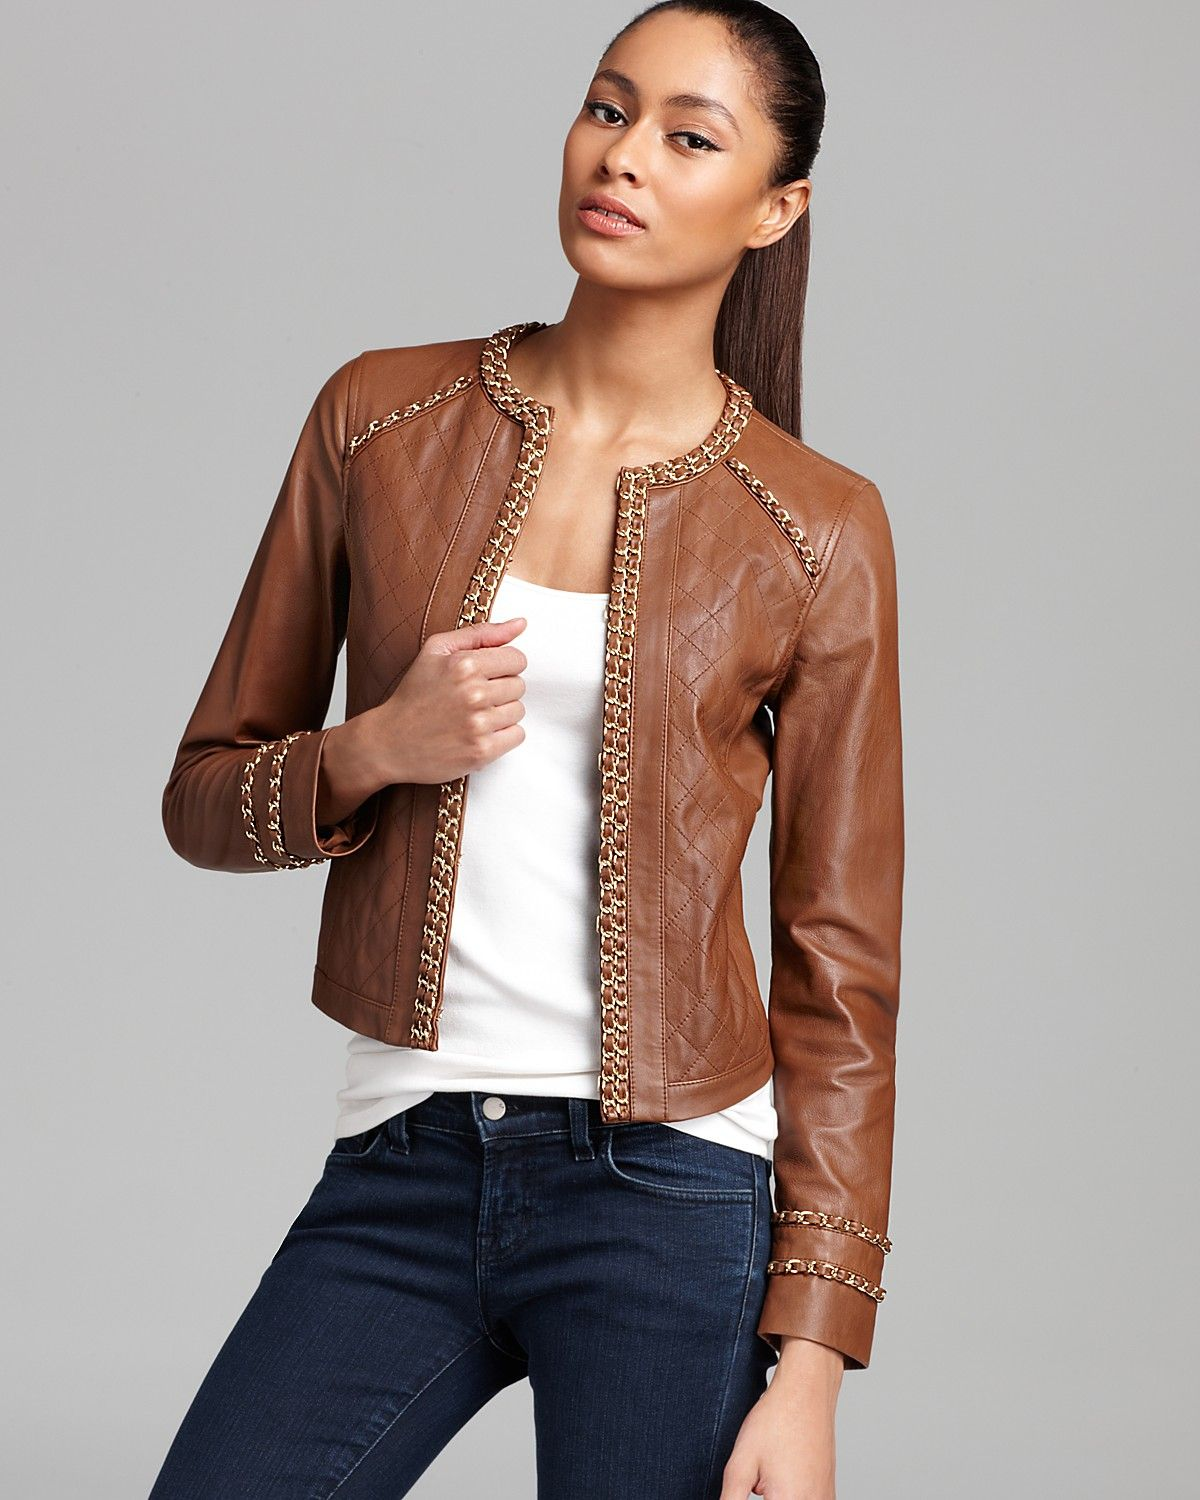 Michael Michael Kors Leather Jacket With Chain Women Jackets Bloomingdale S Leather Jacket Womens Jackets Casual Coats Jackets Women [ 1500 x 1200 Pixel ]